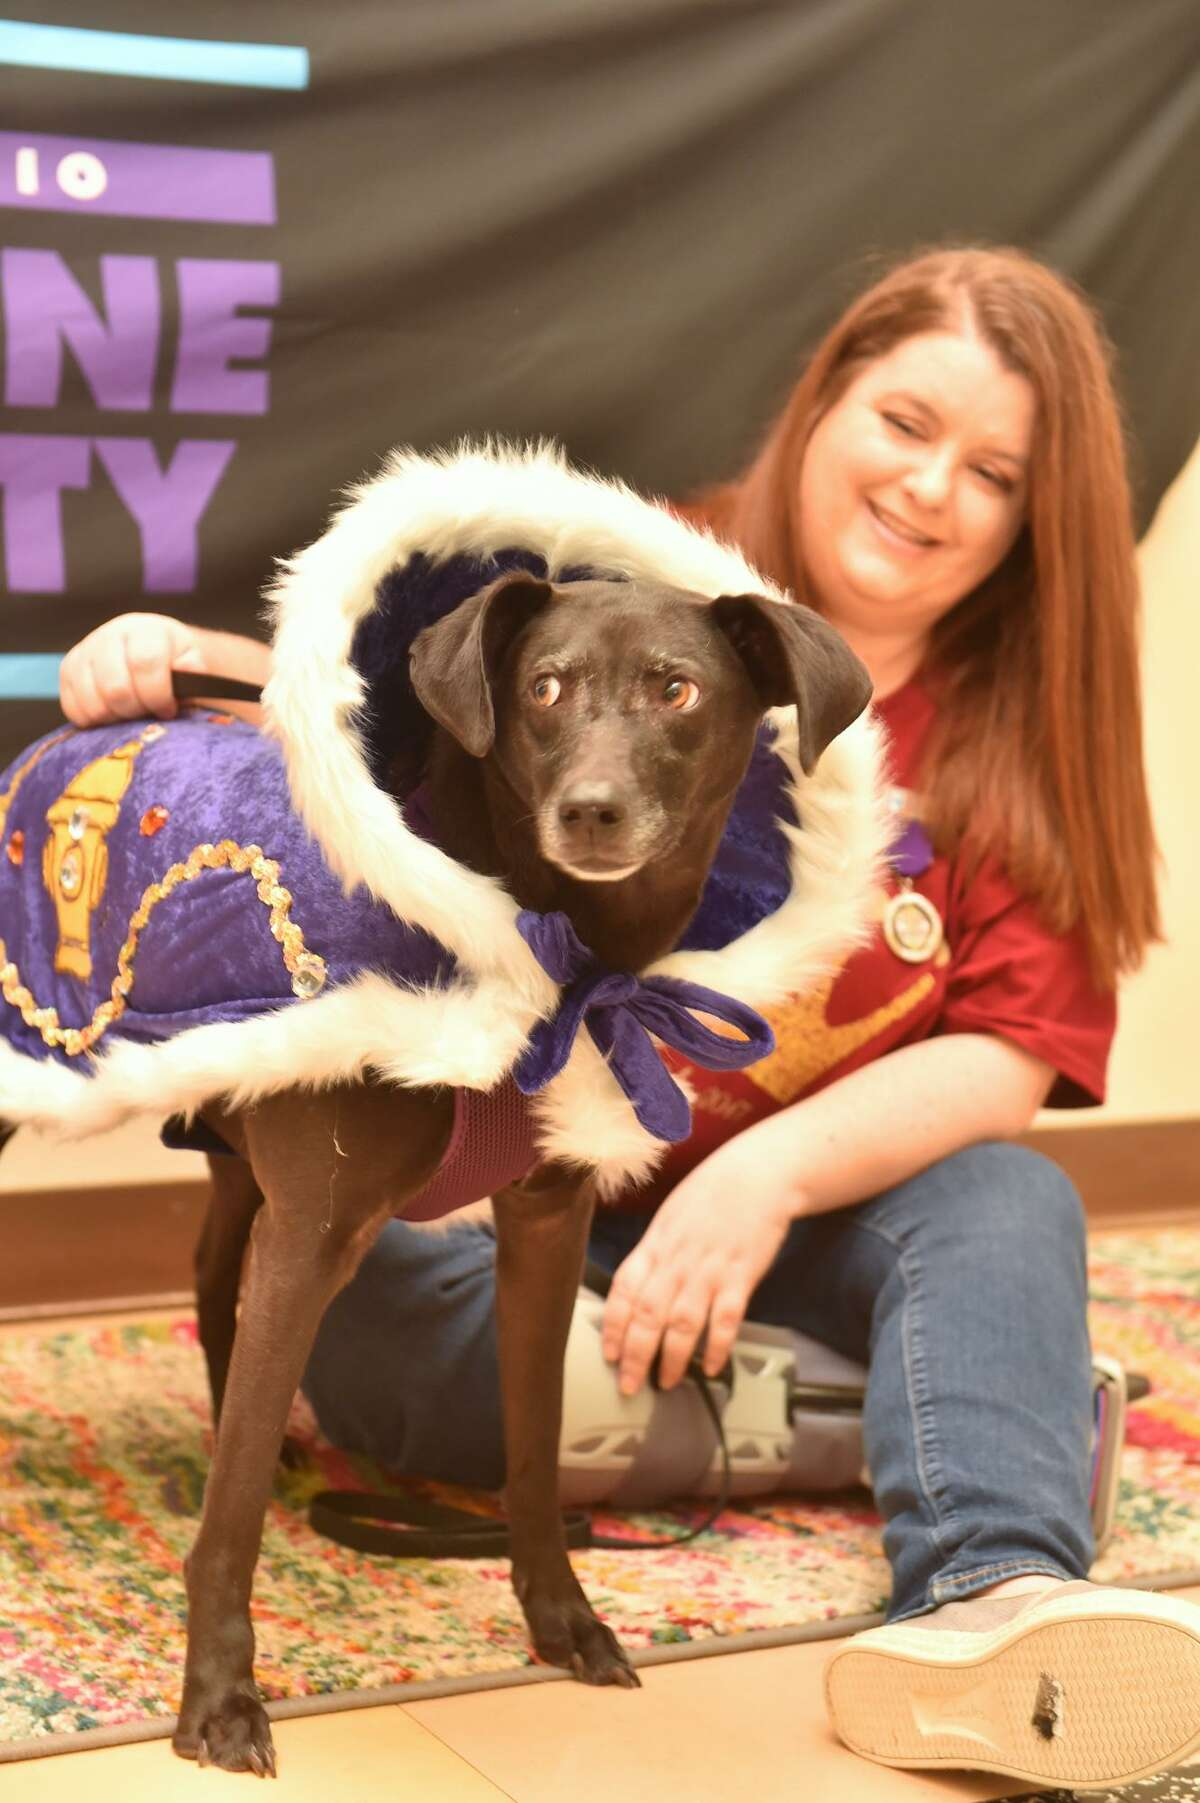 """Employees of the San Antonio Humane Society said their jobs made them feel """"part of something meaningful."""" The Humane Society announced earlier this year that Andy Wheeler, a dog owned by Elizabeth Wheeler, earned the title """"Duke of the Chew Toy."""""""